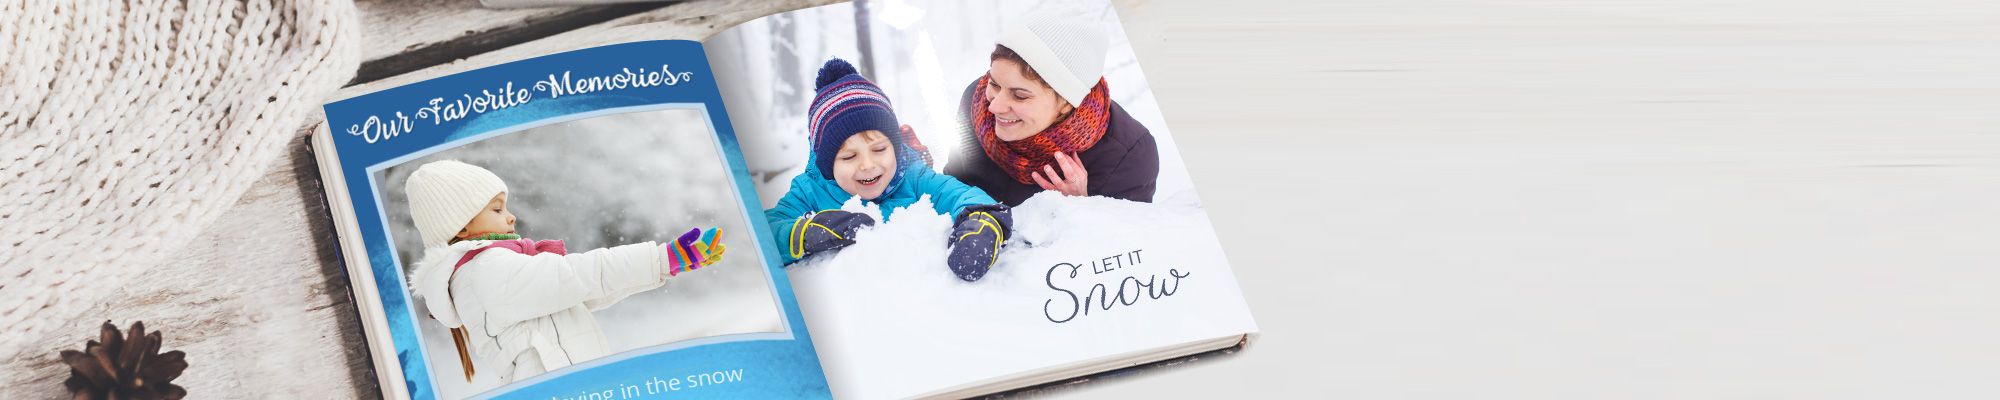 Photo Books Tell your own story with our Personalised Photo Book range from £5.99